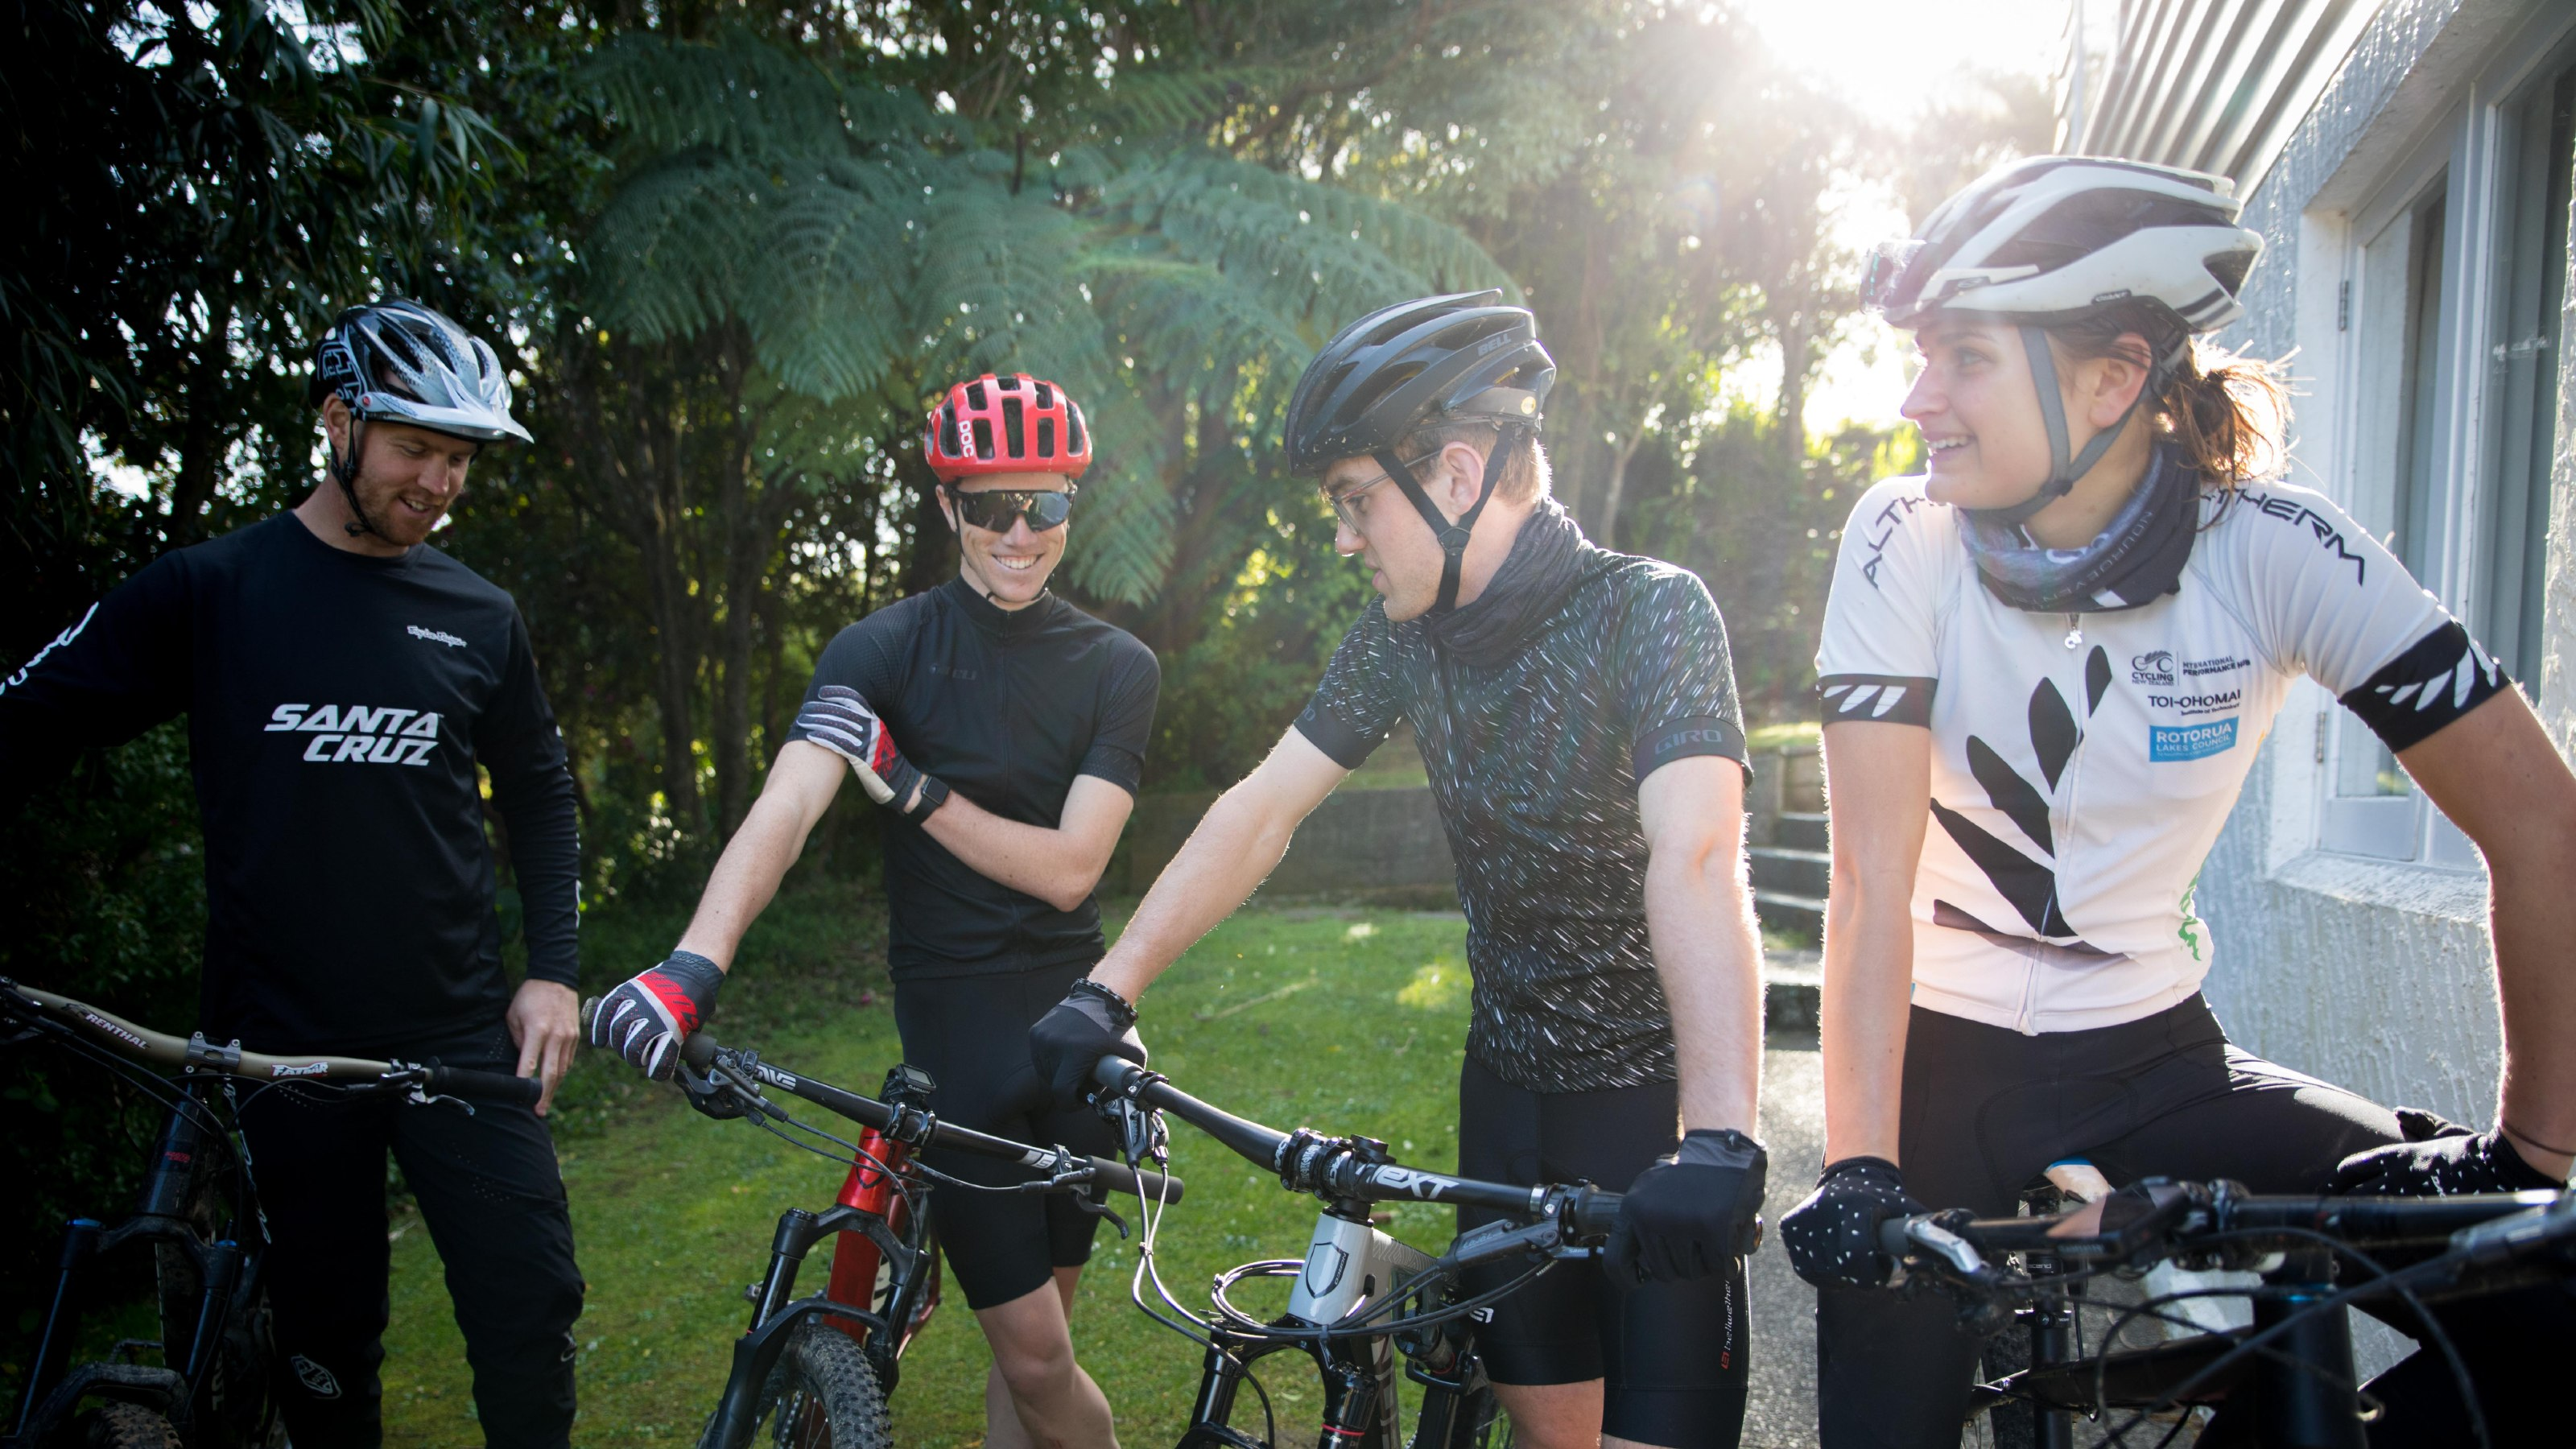 Four students with their mountain bikes, wearing helmets and cycling gear.